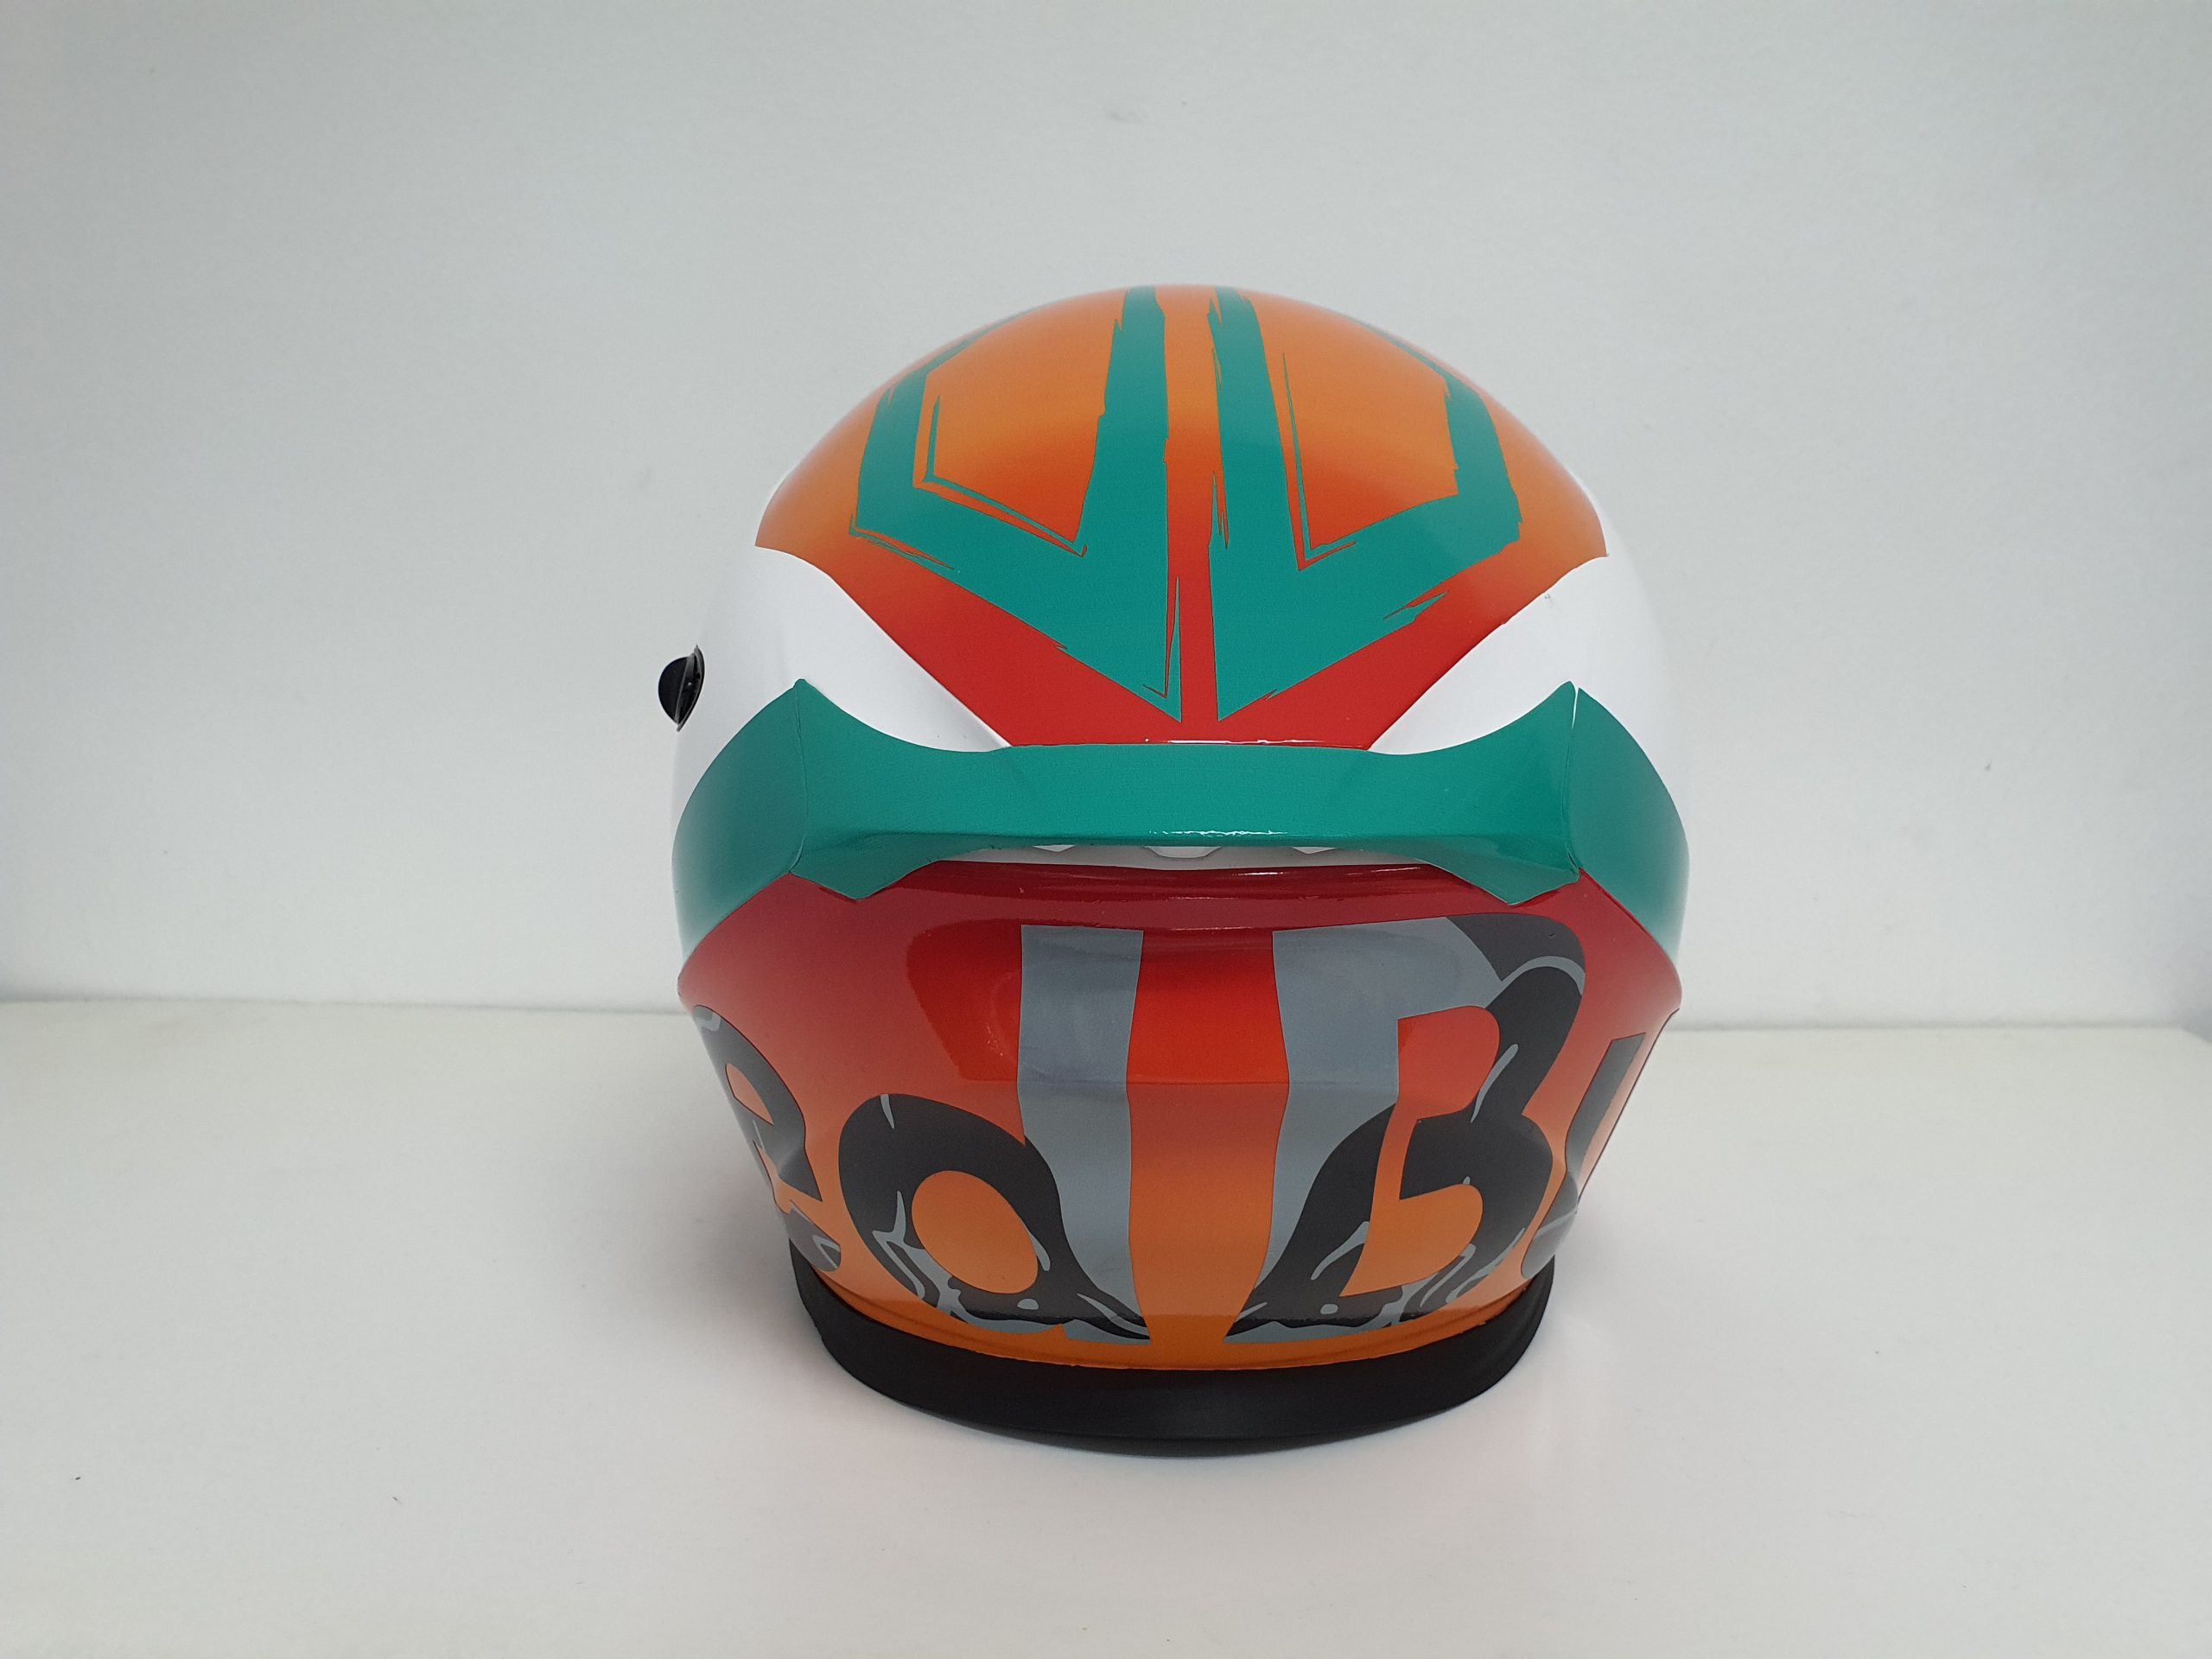 Full Back Profile of Scorpion Helmet Redbull KTM with different shades of gray for the text